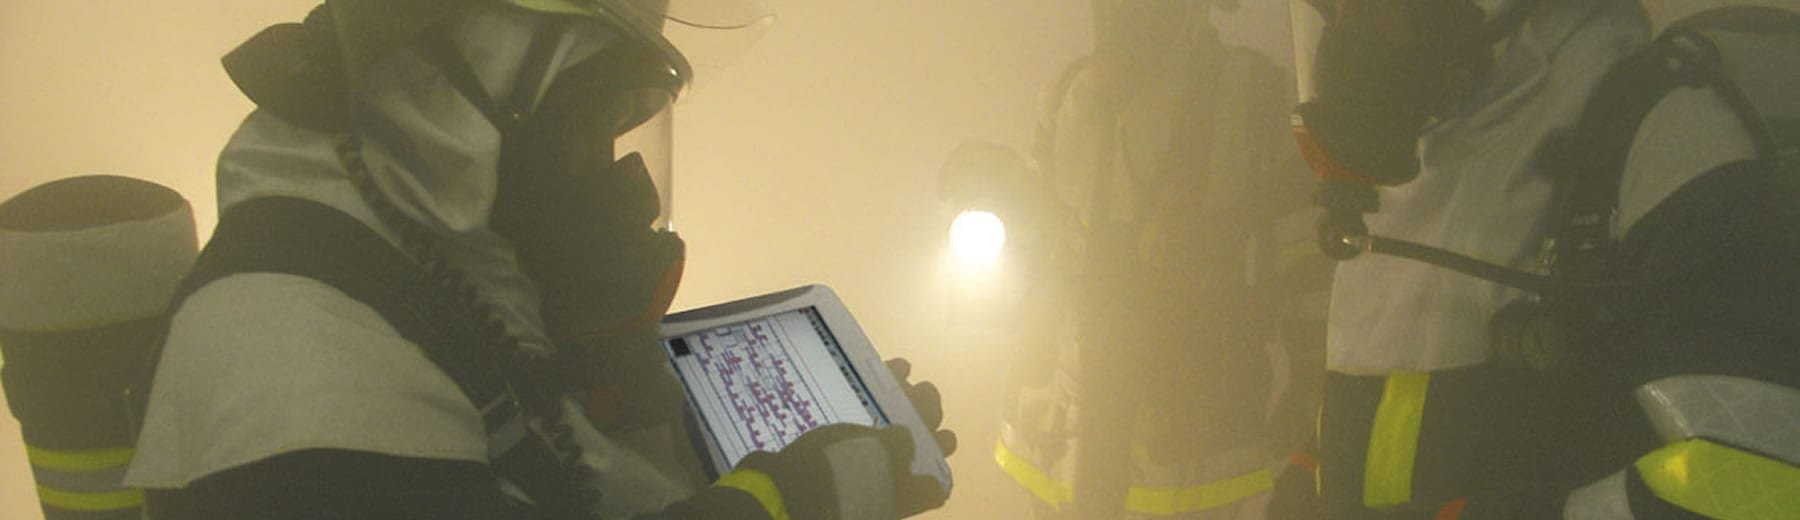 rugged computing in the emergency services